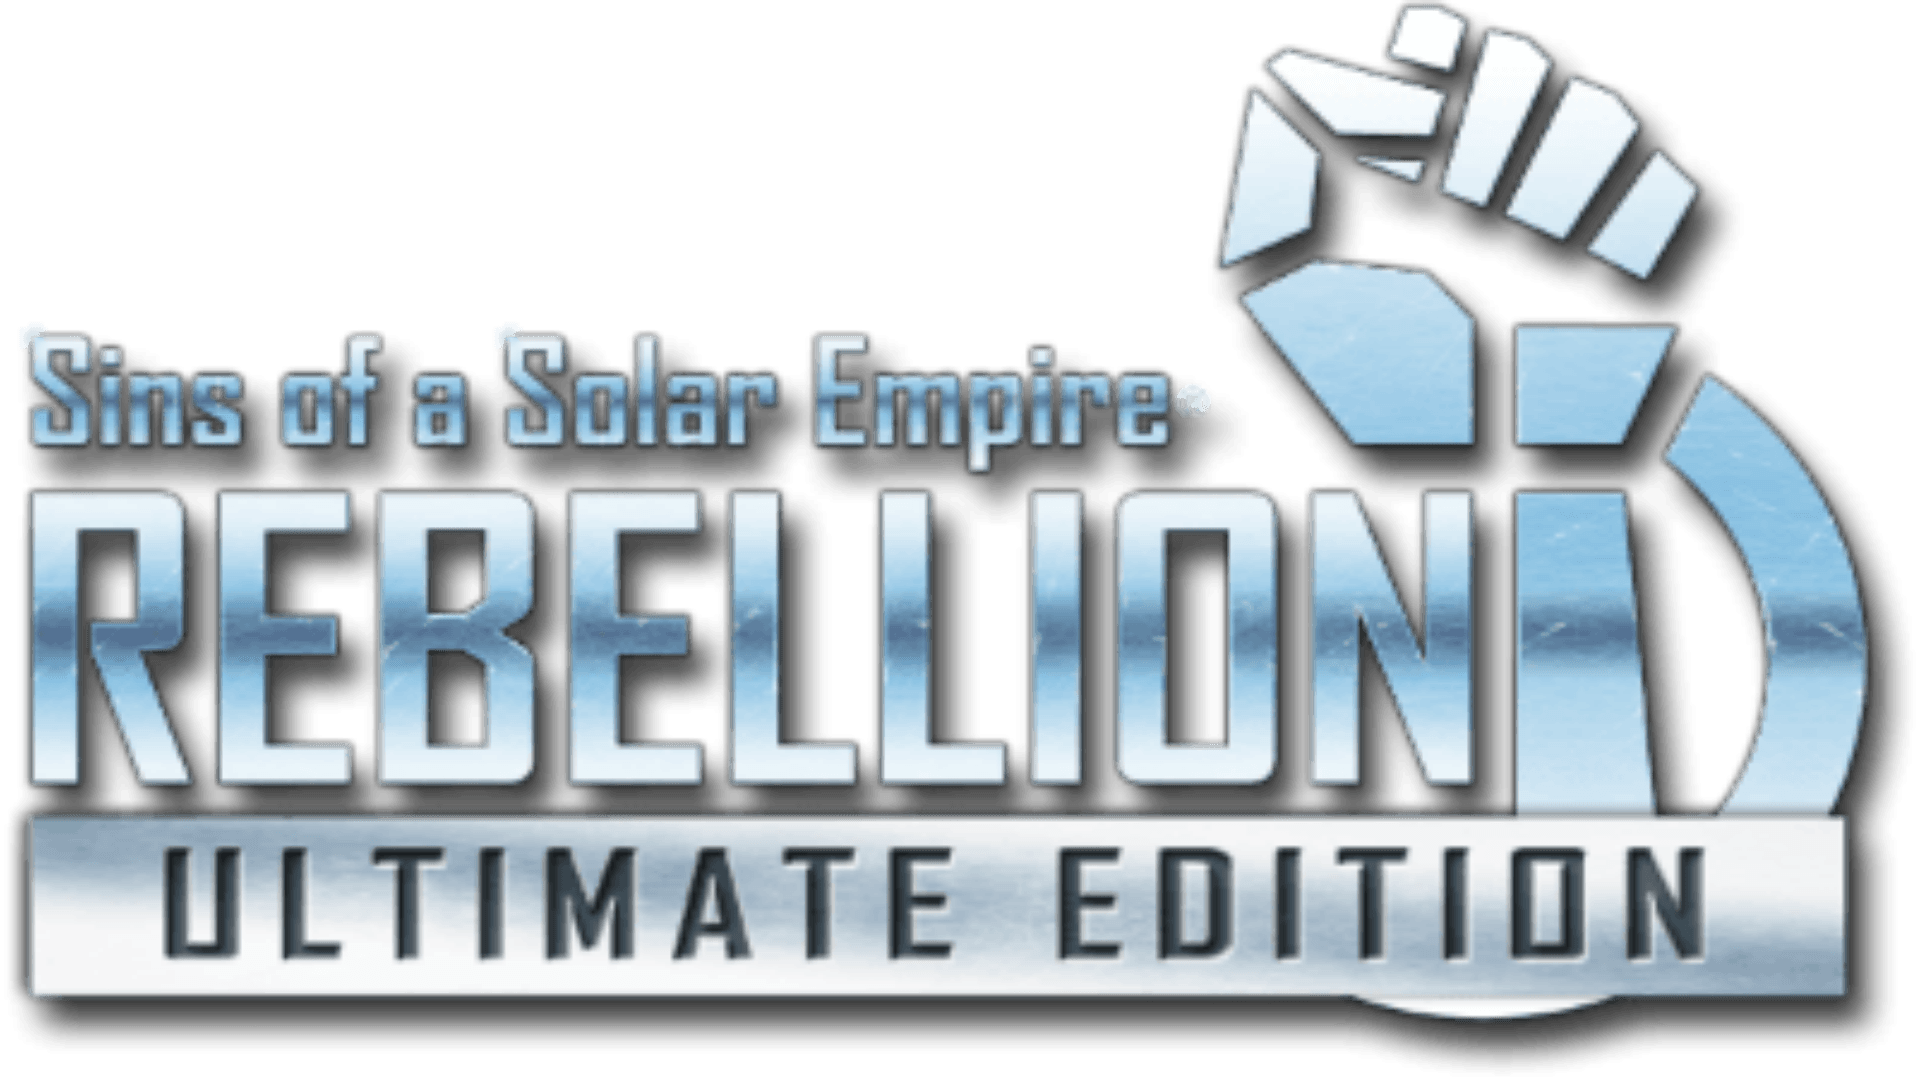 Europe gets sins of a solar empire rebellion ultimate edition on pc